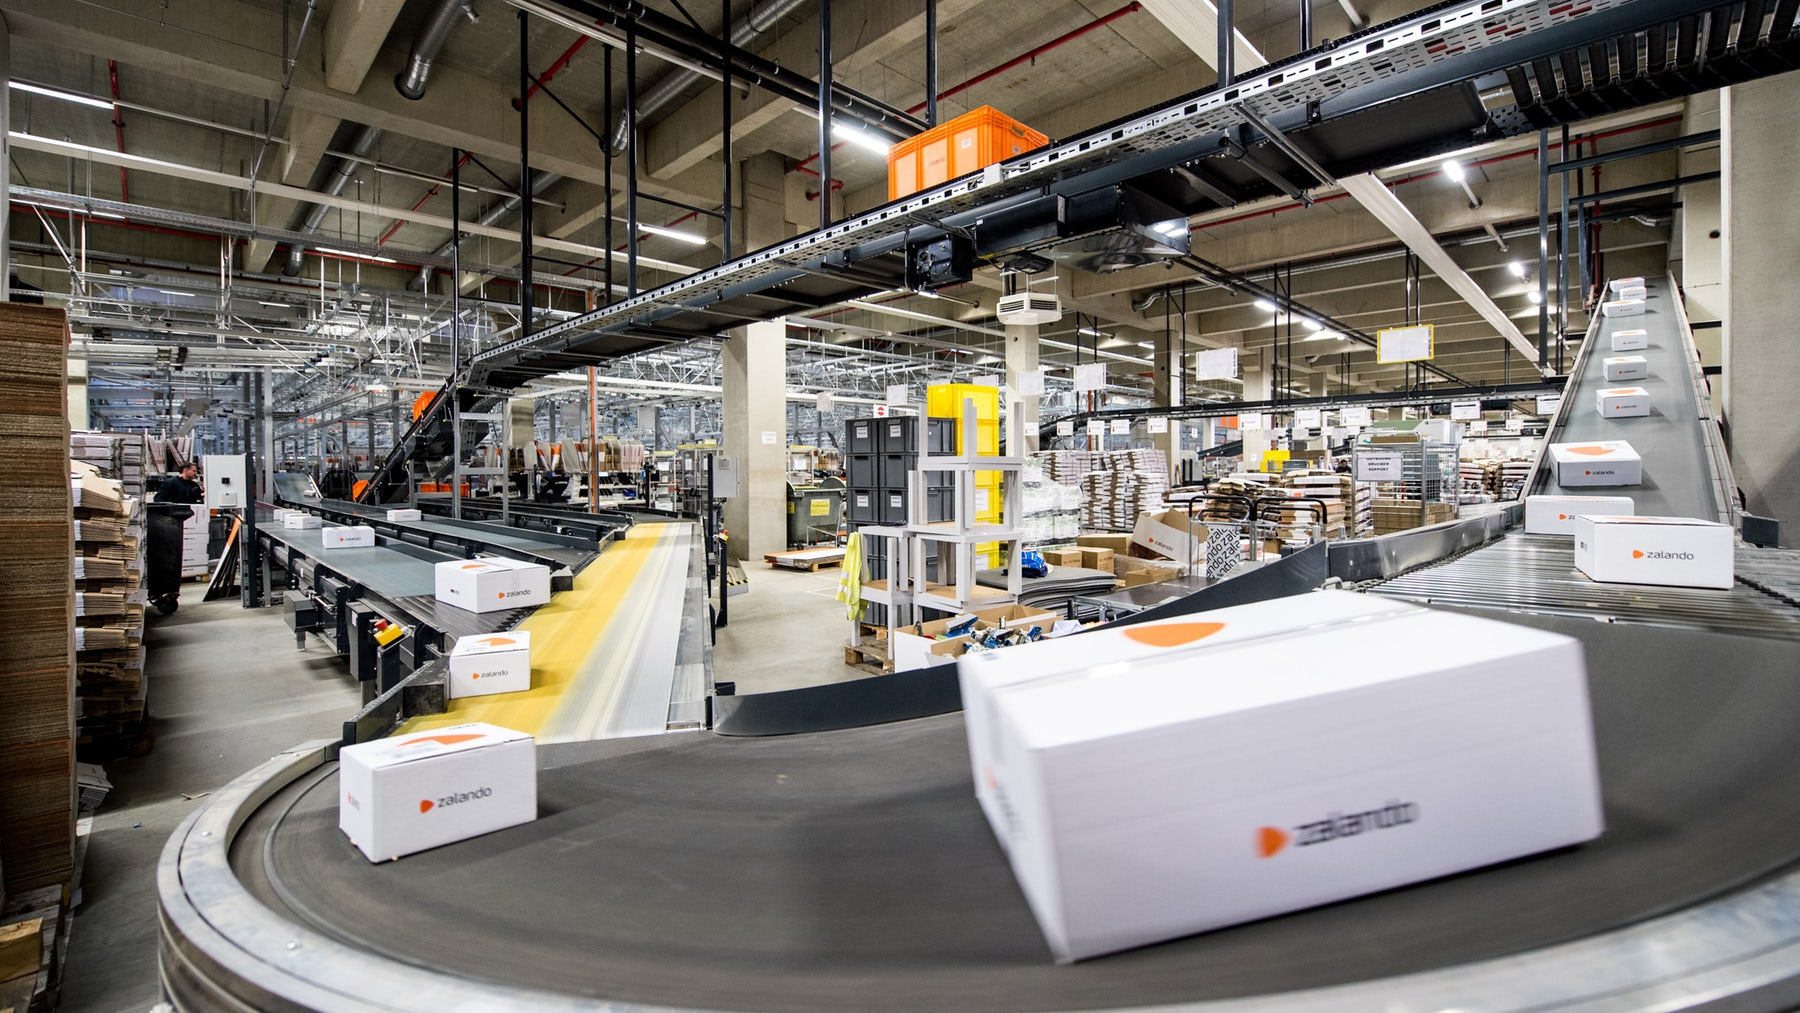 Zalando logistics centre | Source: Courtesy